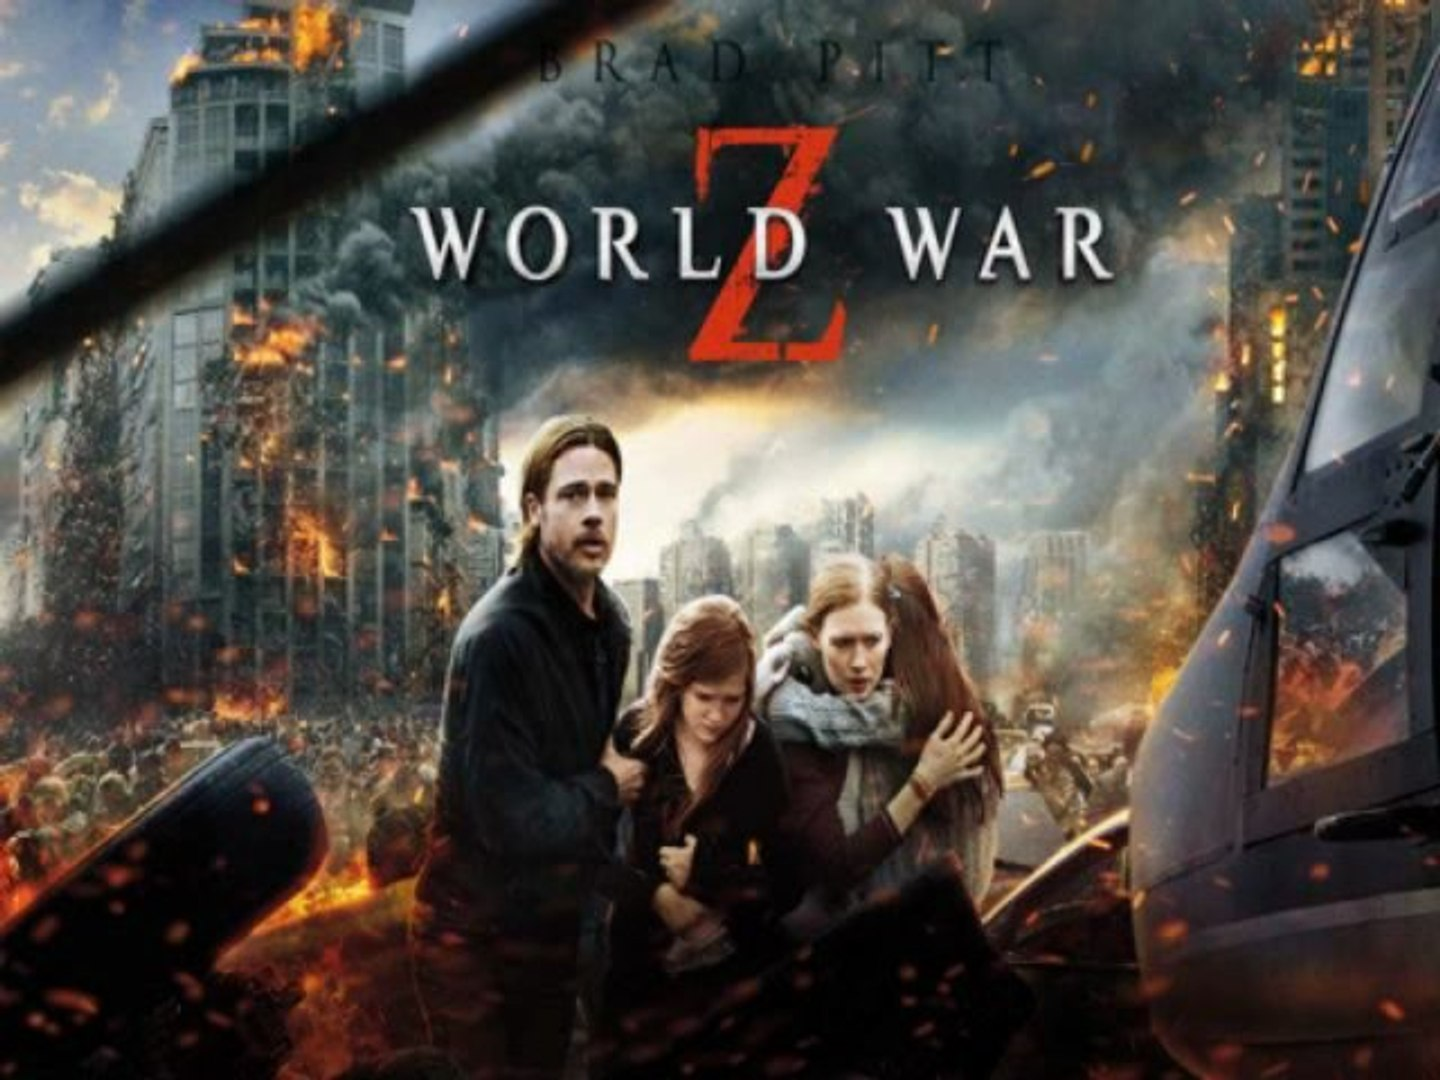 [FuLL MOVIE] ++World War Z Online Movie Free Download [streaming movie uk]